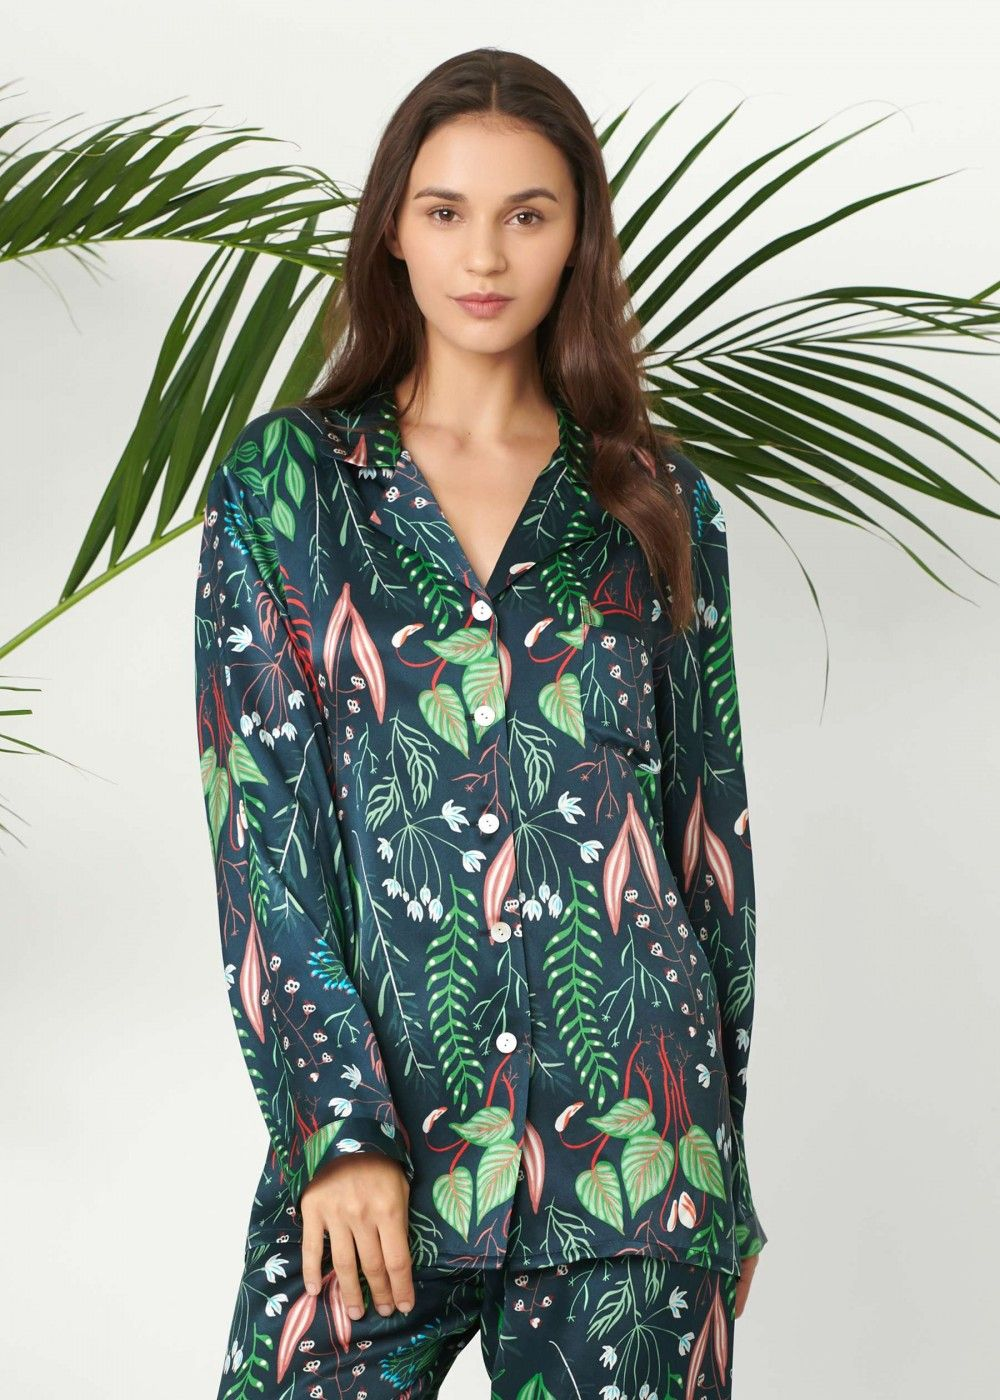 Pure charmeuse silk is is known for its effectiveness in skin nourishment  and aging prevention. LILYSILK plant print pajamas set keeps you cool in  summer ... f1d0485ca